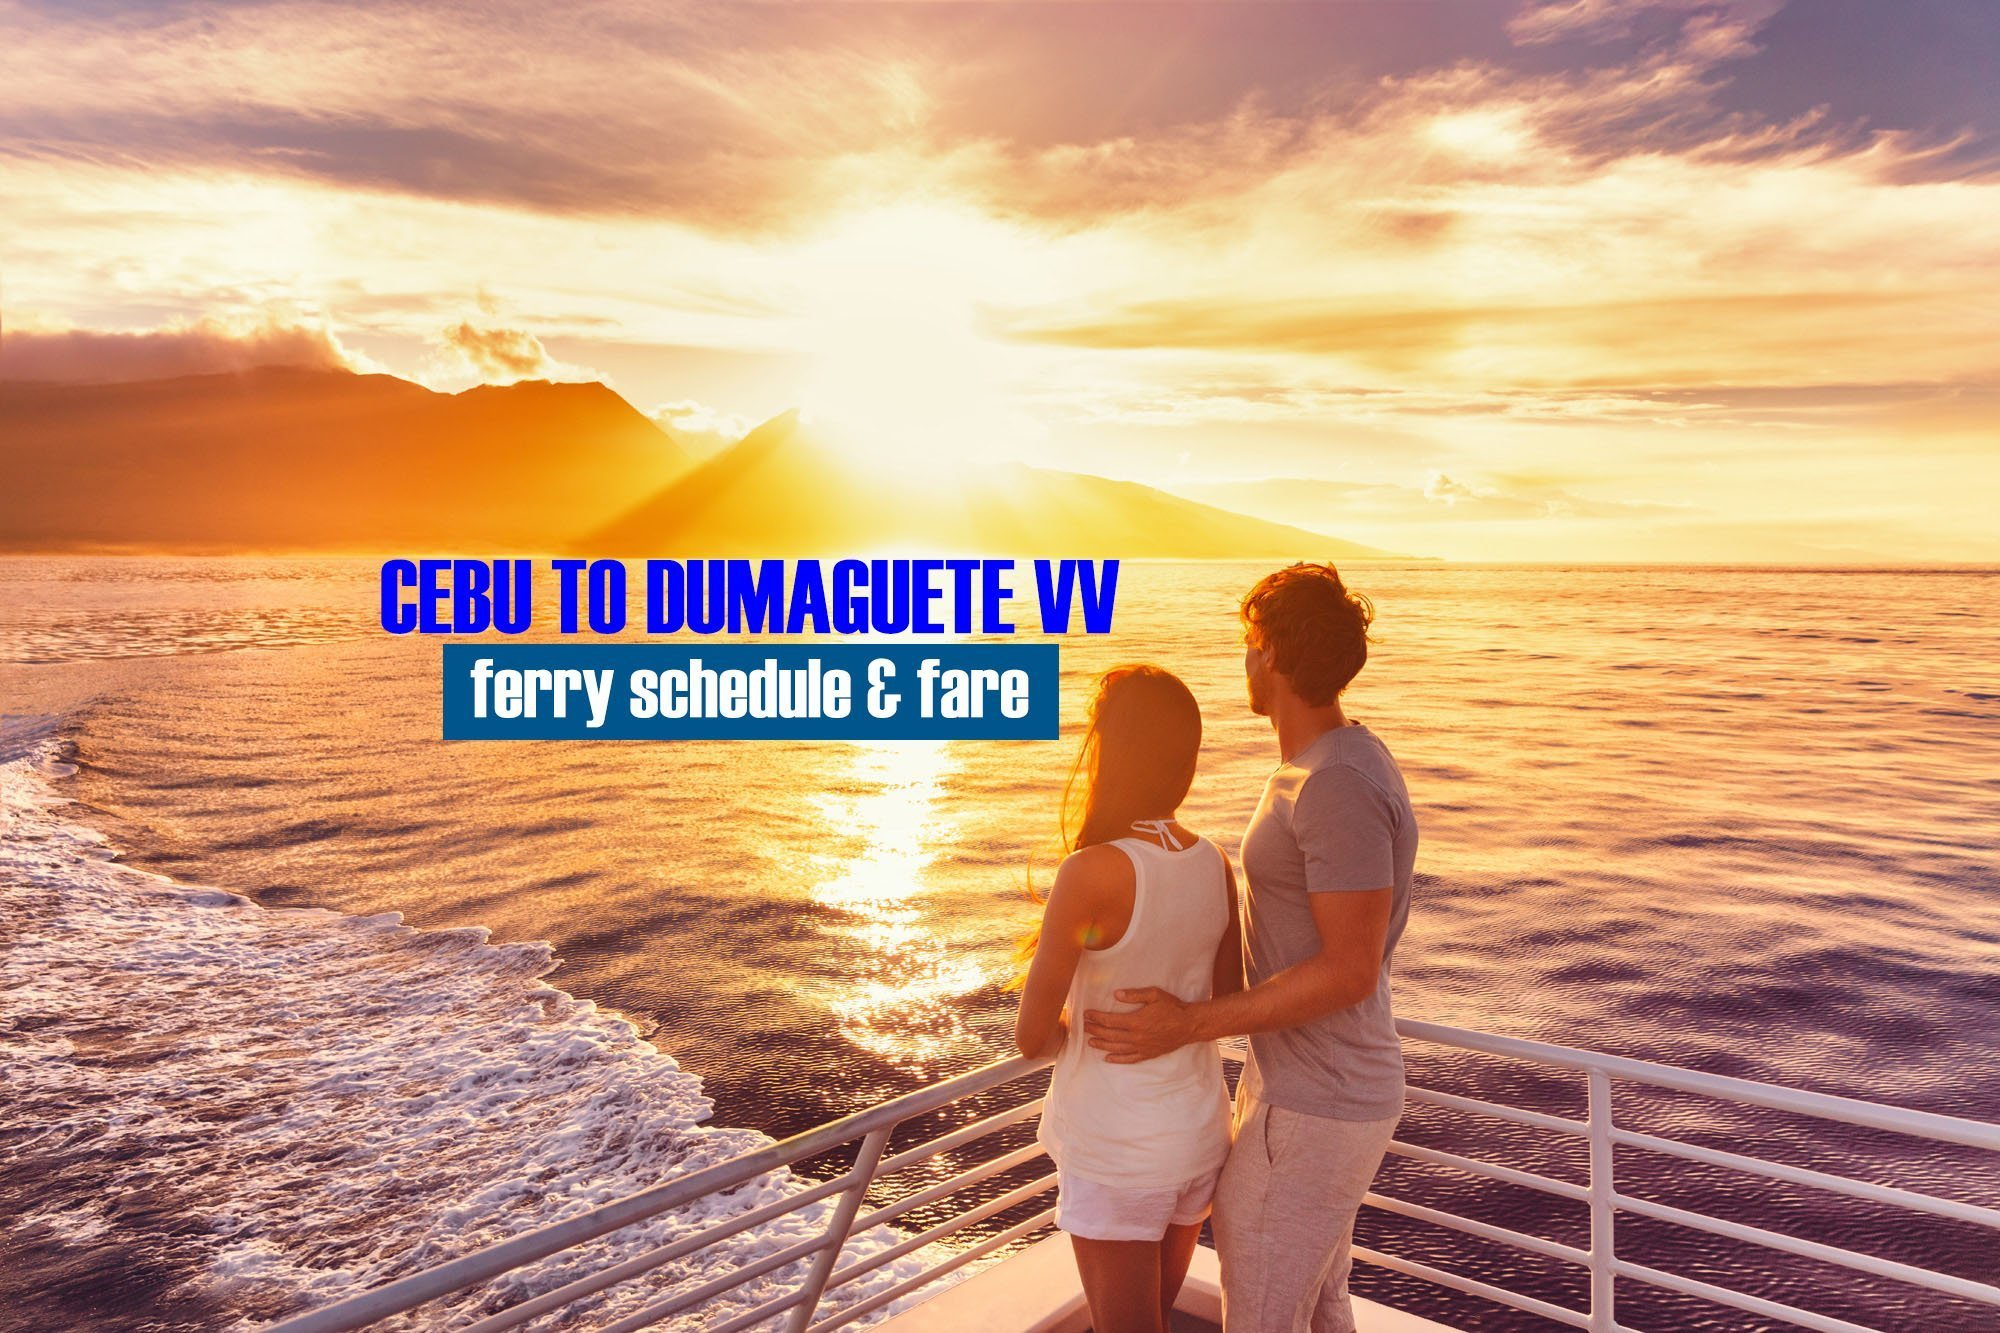 2020 Cebu to Dumaguete Ferry Schedule and Fare Rates